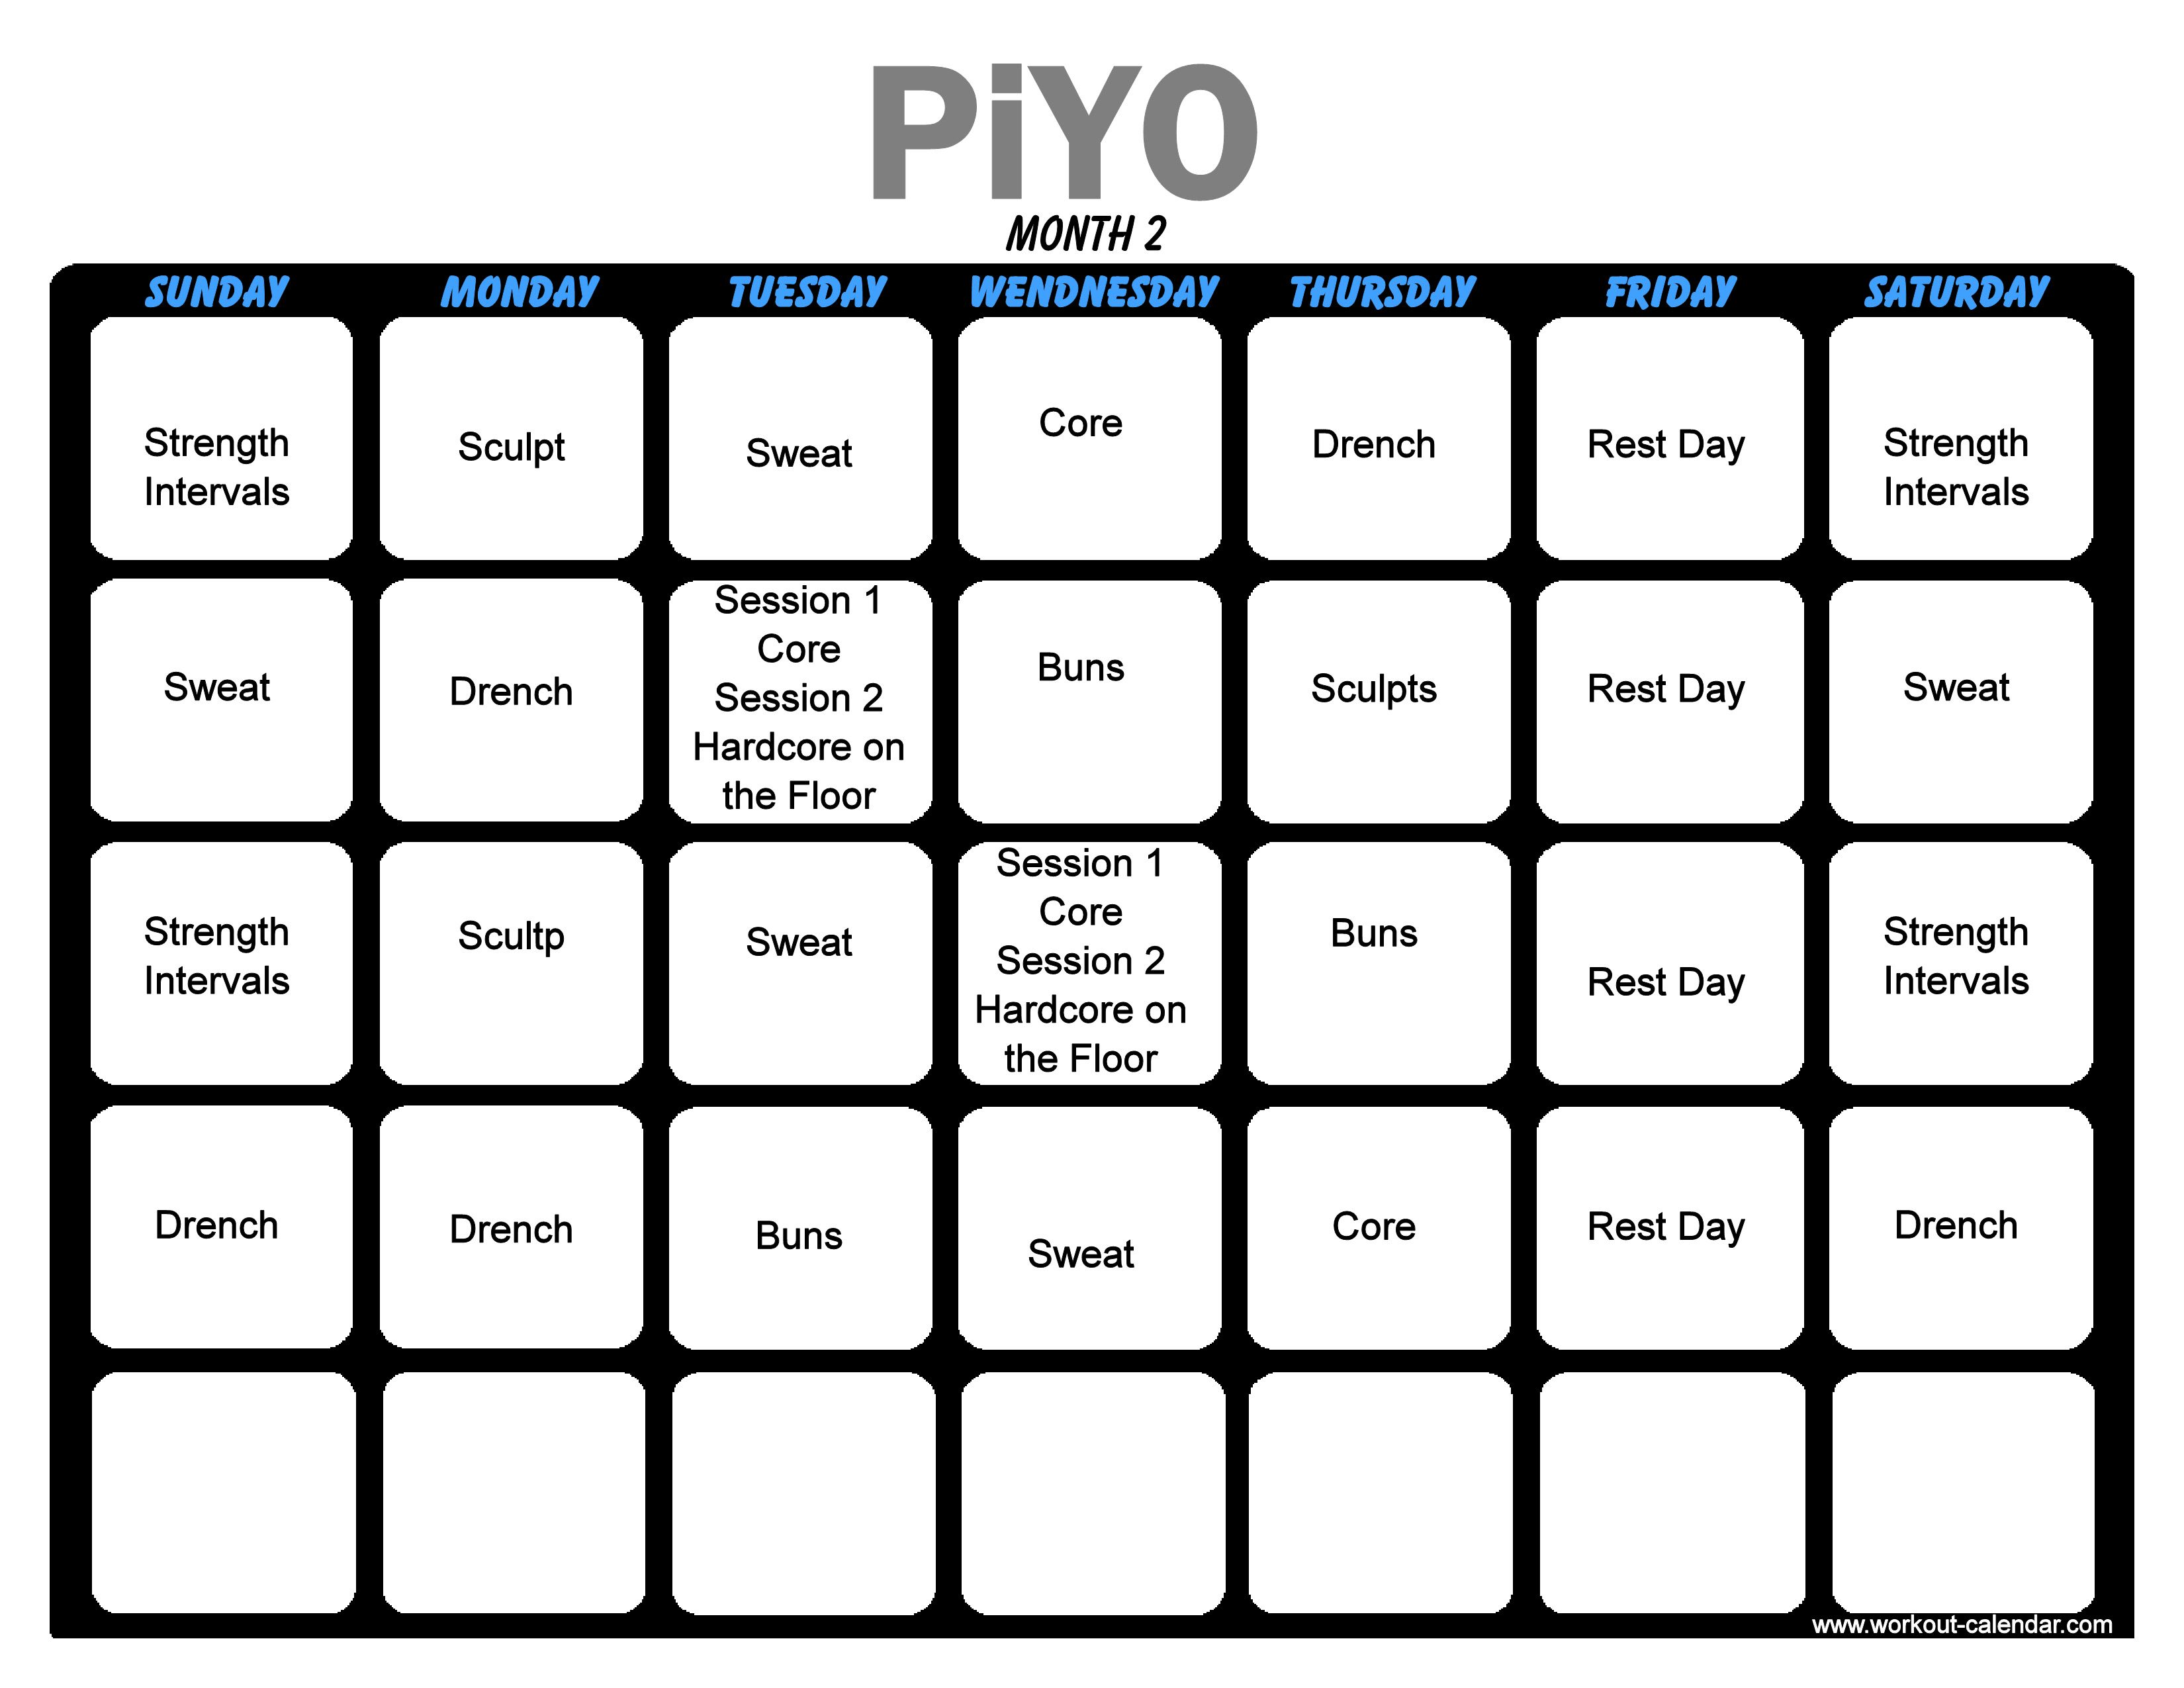 Piyo Workout Month 2